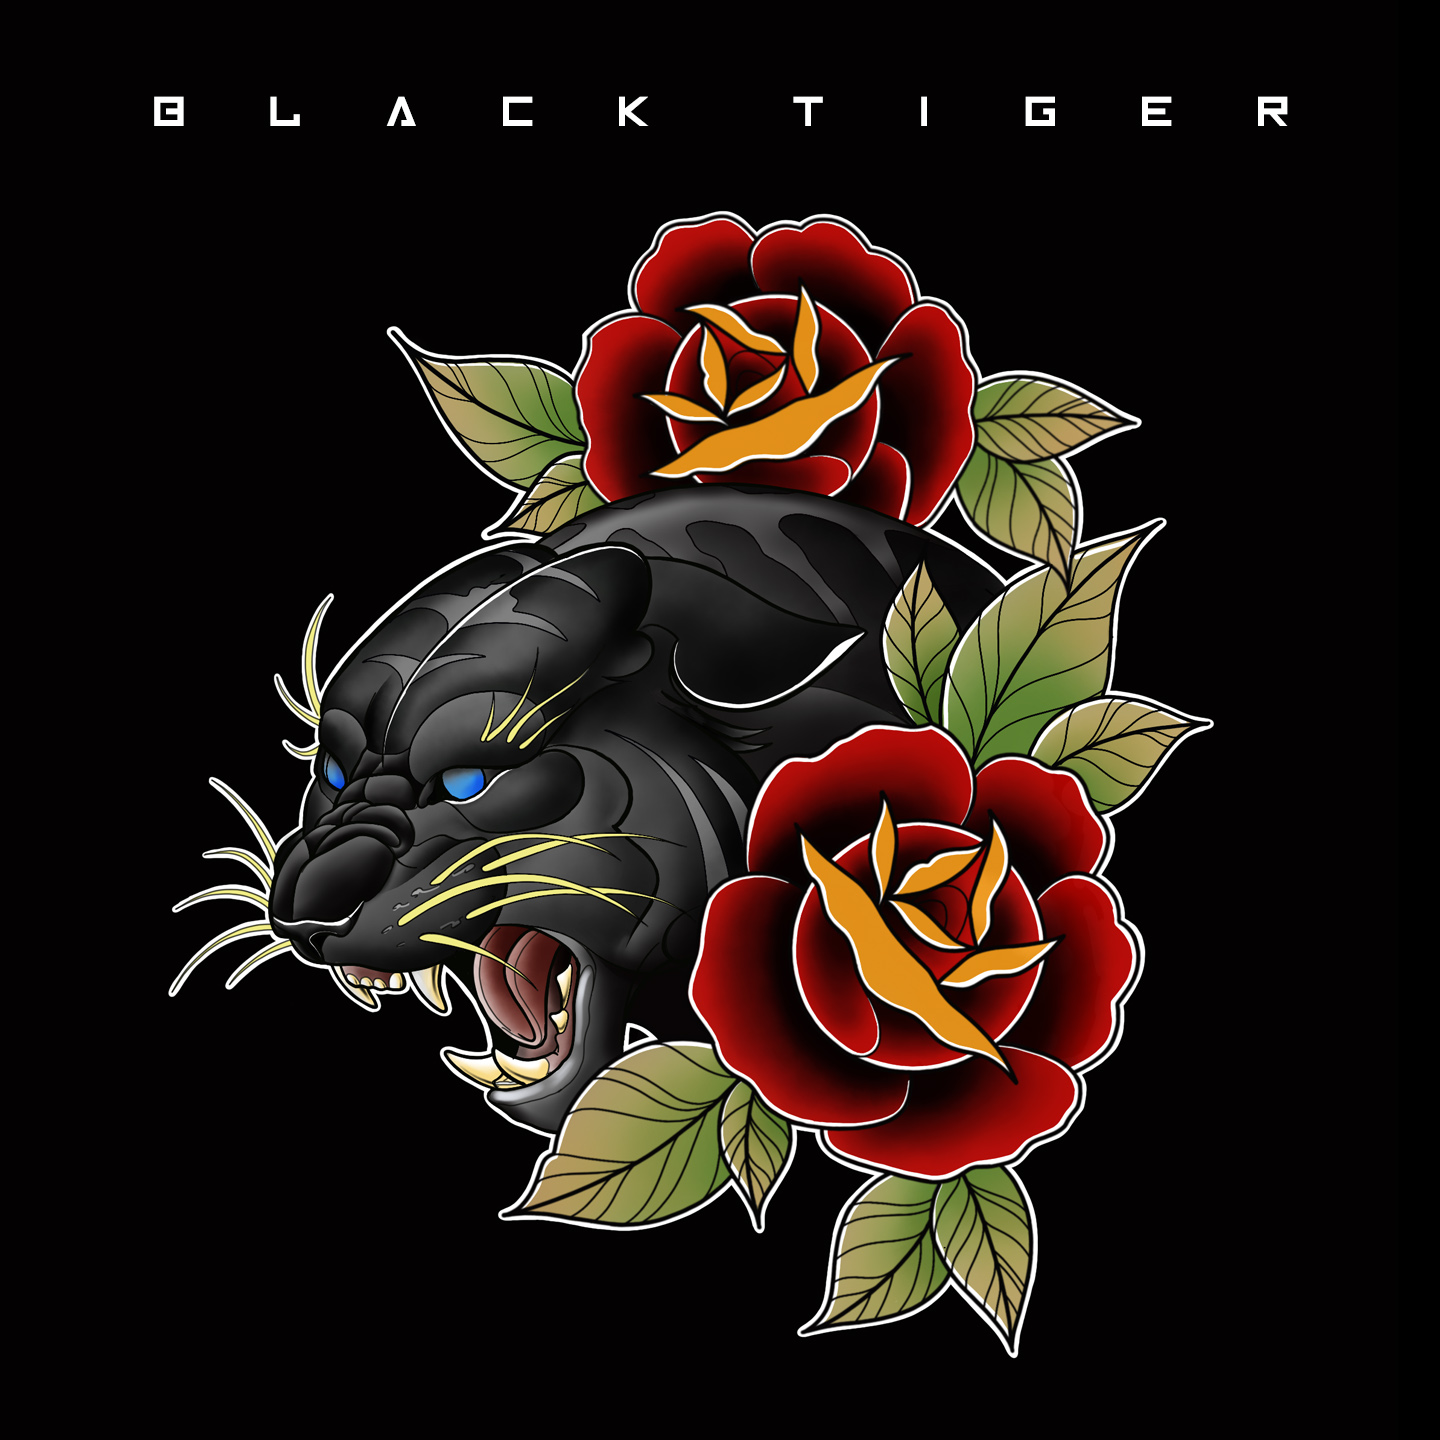 Black Tiger album